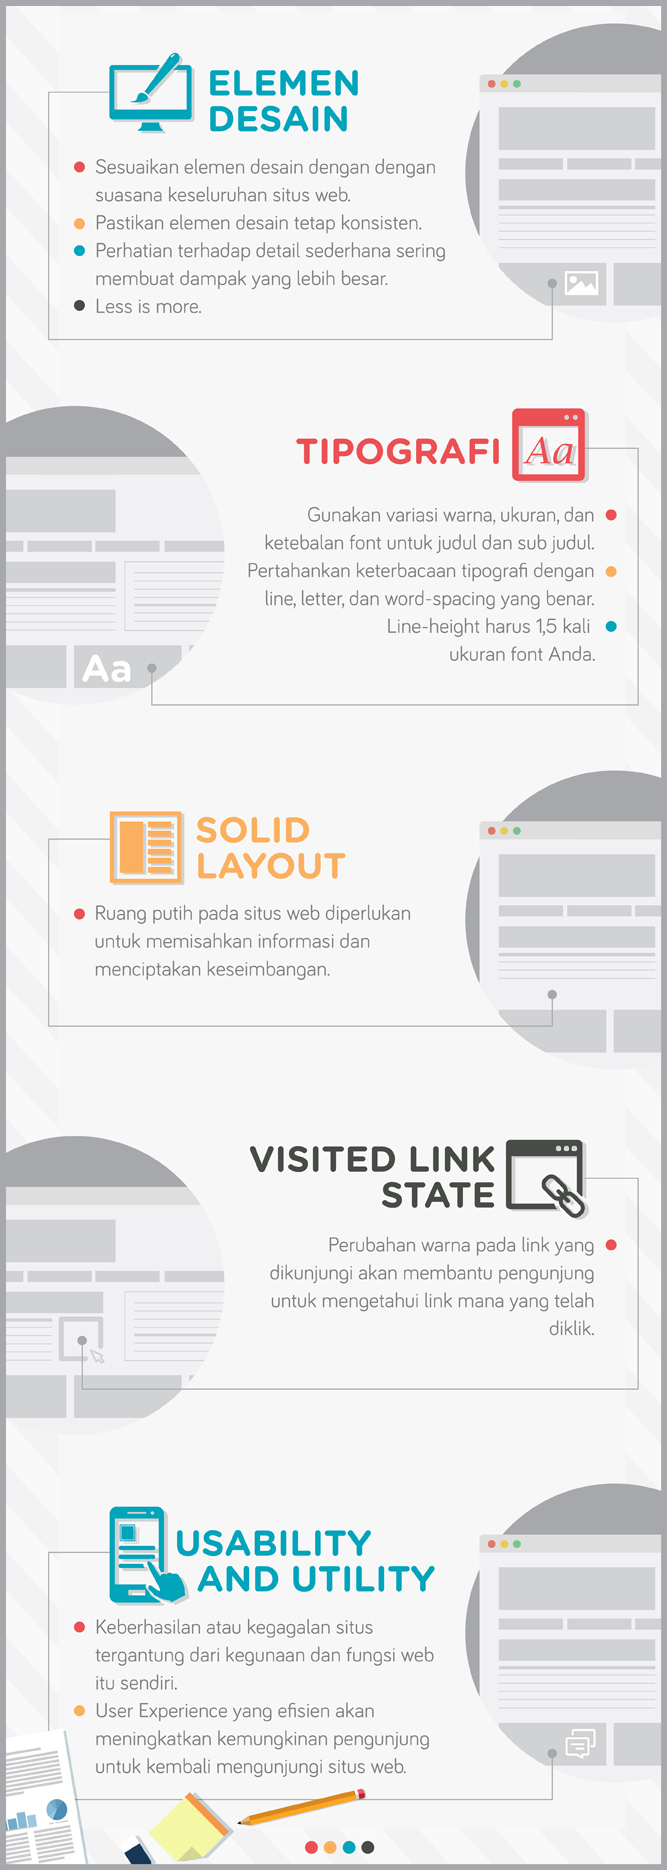 [Infograhics]-Anatomi-Web-Design-isi-blog